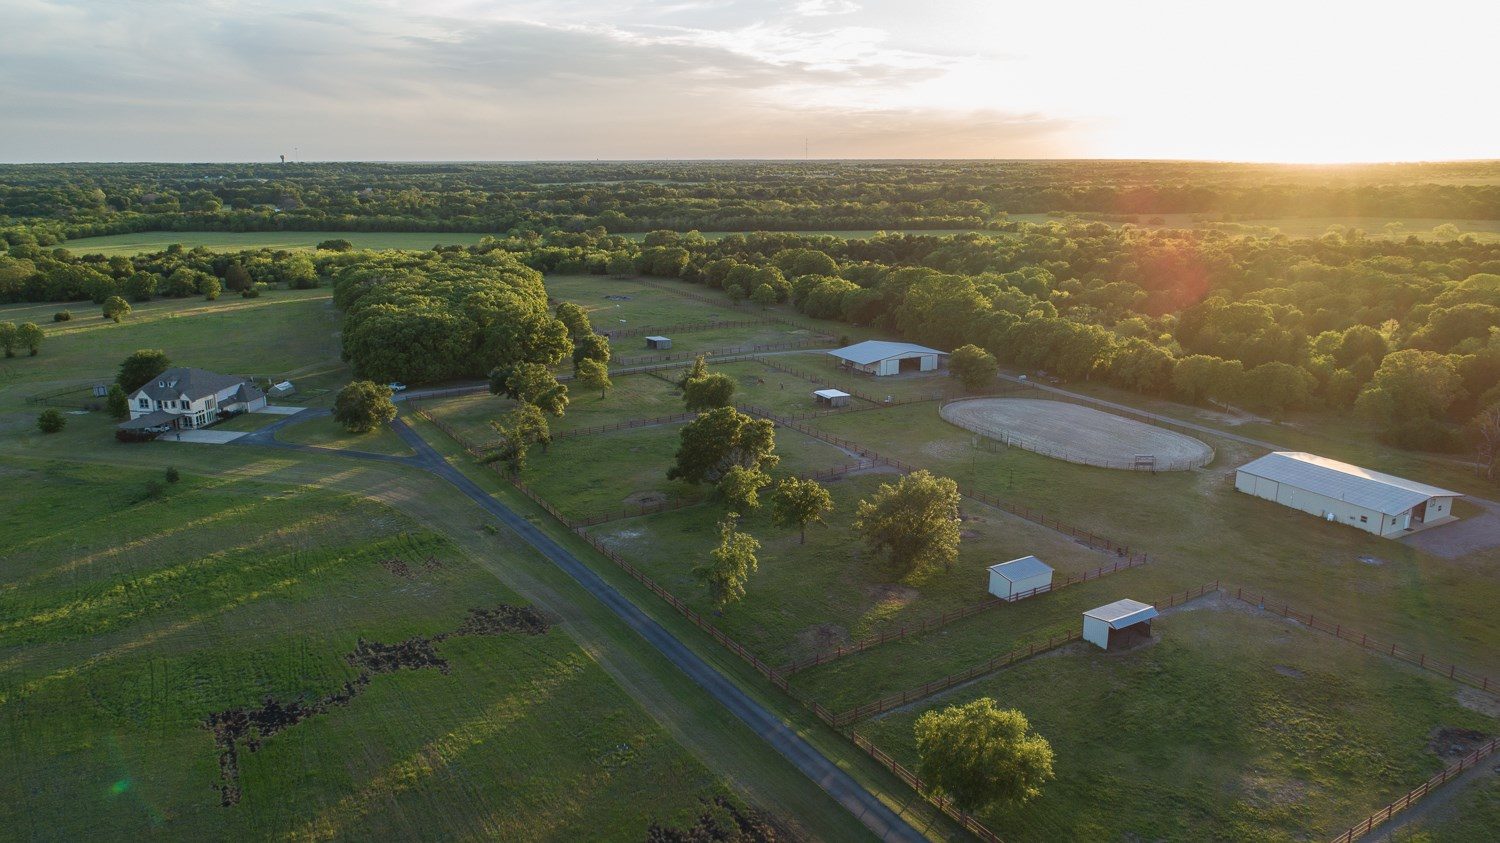 EAST TEXAS LUXURY RANCH FOR SALE IN TERRELL, TEXAS